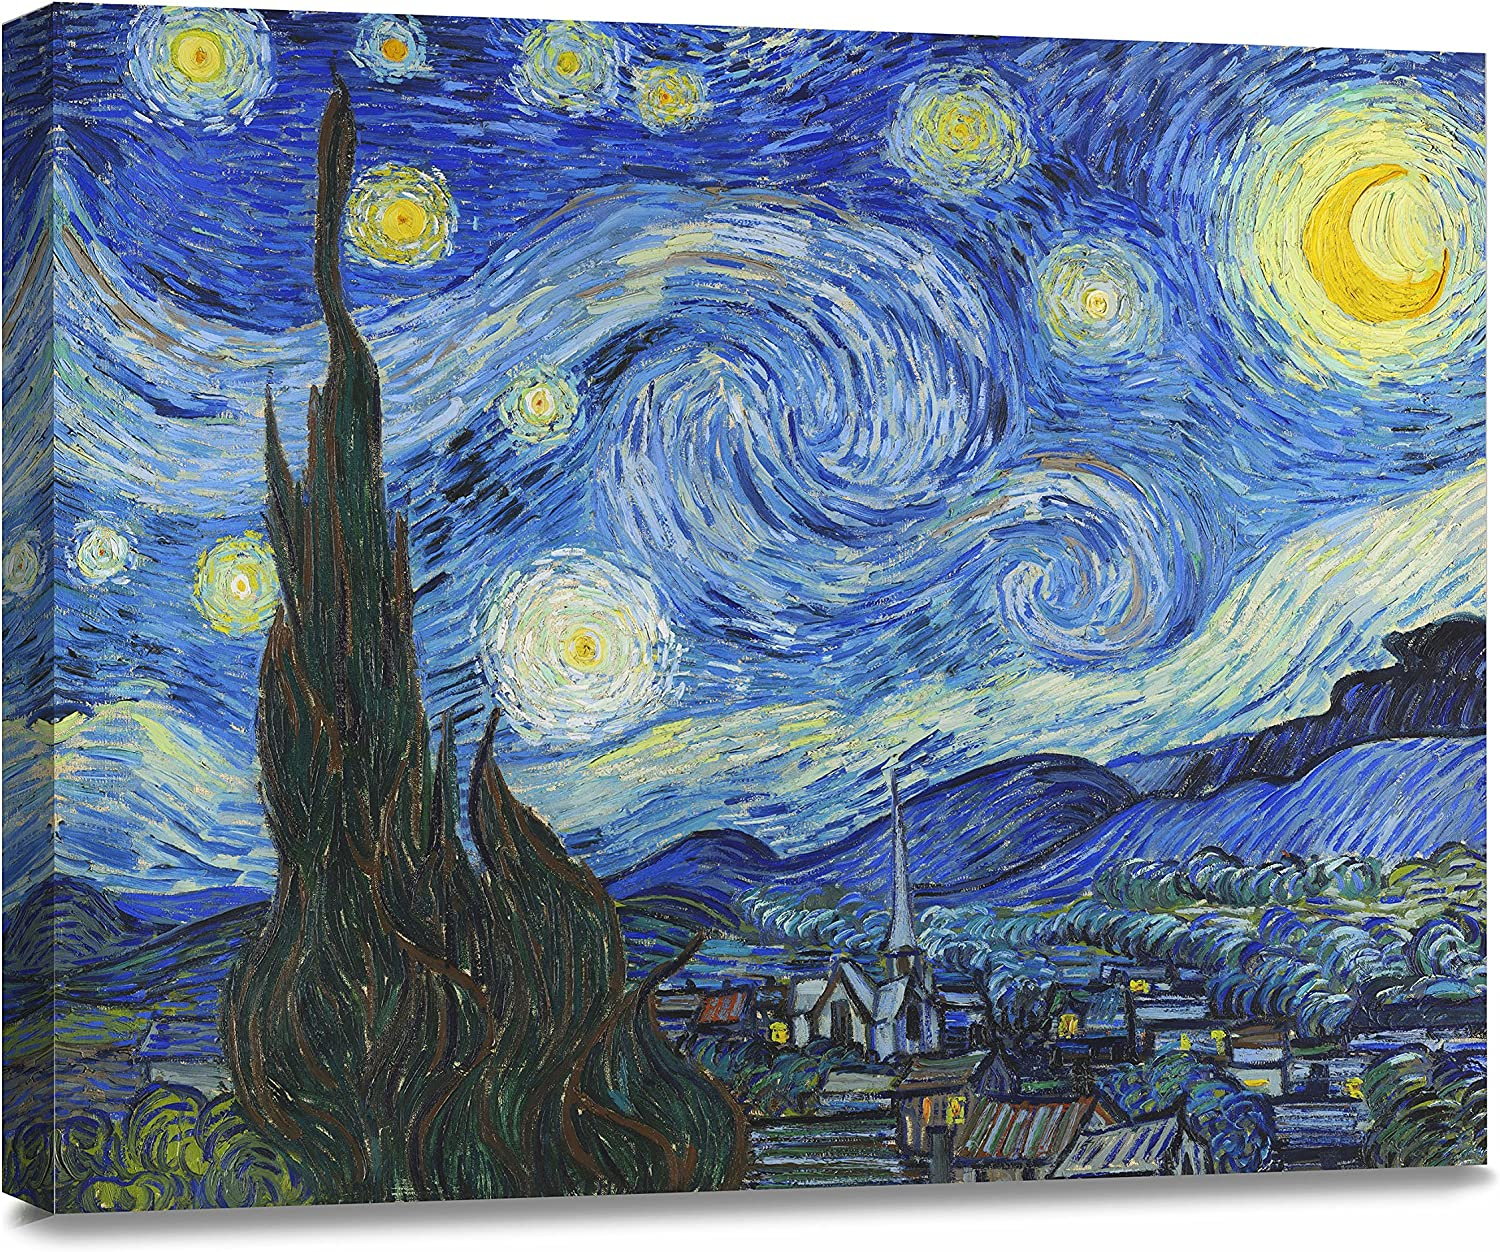 "ArtKisser Painting Starry Night 1889 by Vincent Van Gogh Canvas Wall Art Modern Giclee Abstract Landscape Home Decor Wooden Framed Stretched Prints on Canvas Reproduction Ready to Hang 16"" x 12"""